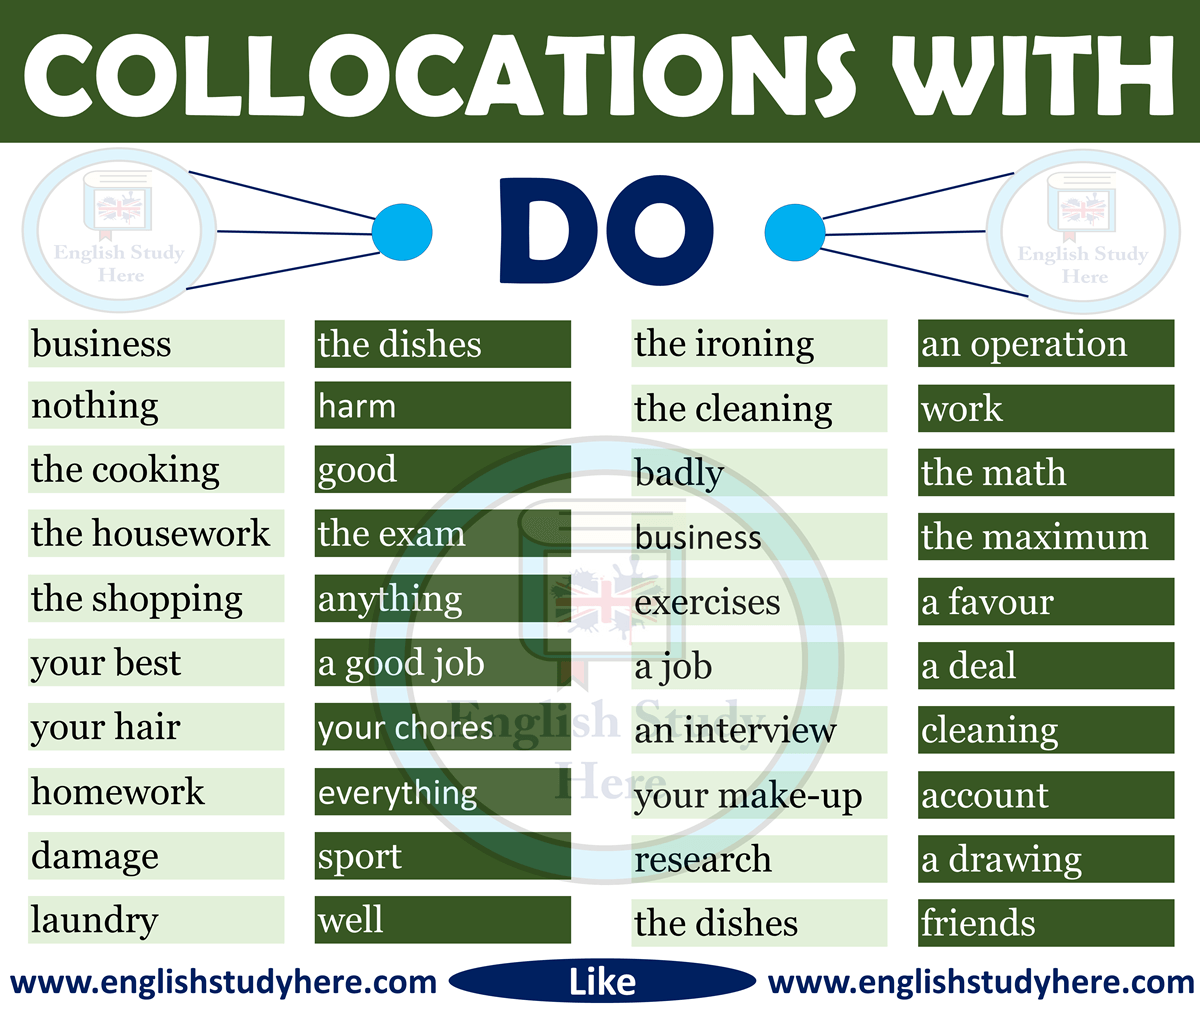 Collocations With Do In English English Study Here